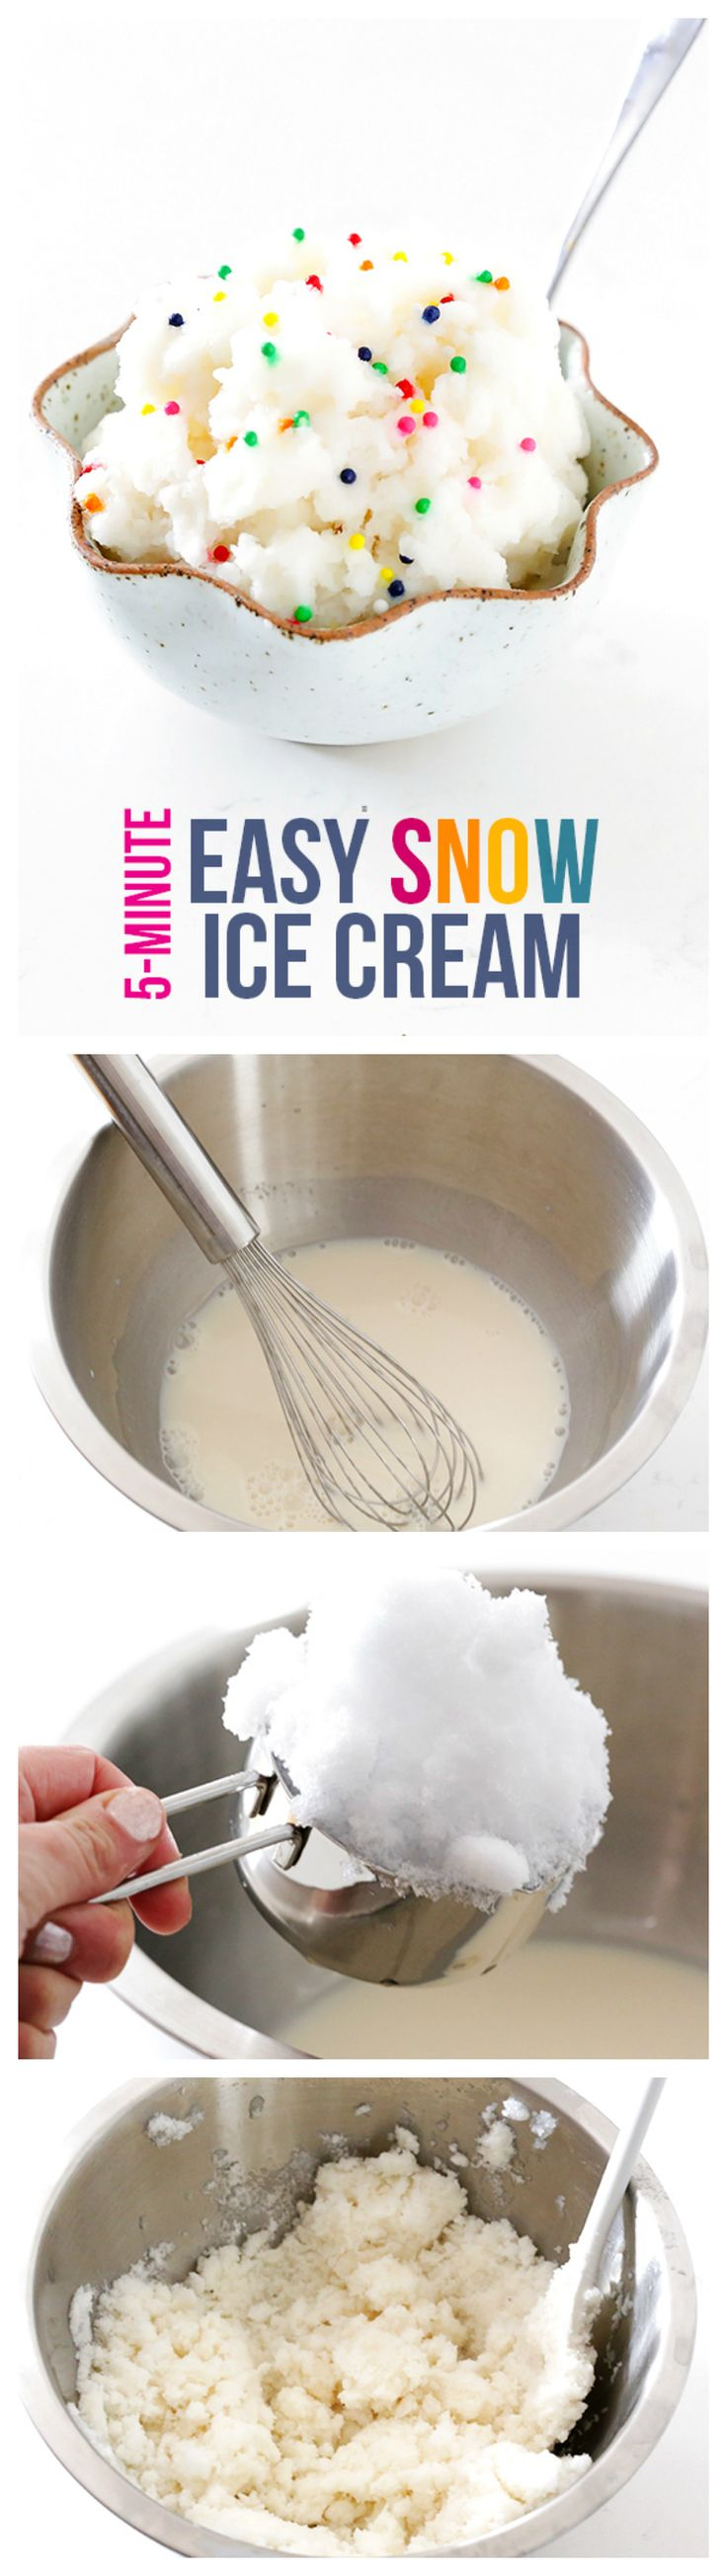 Snow Ice Cream -- it's so tasty, made with just 4 easy ingredients and REAL SNOW!